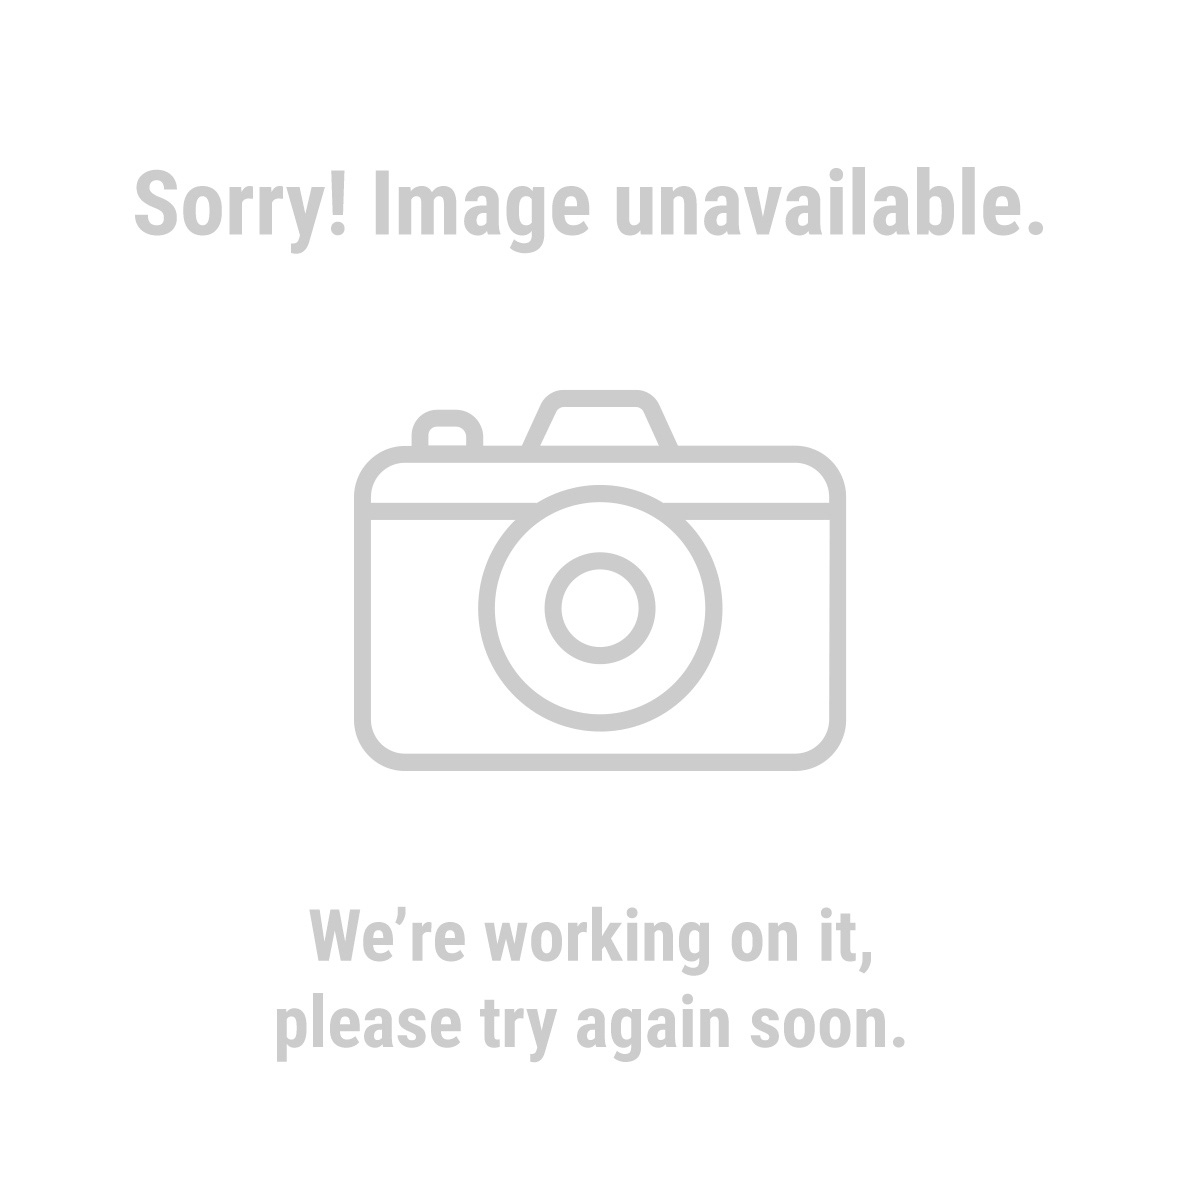 Badland Winches 61258 2500 lb. ATV/Utility Electric Winch with Wireless Remote